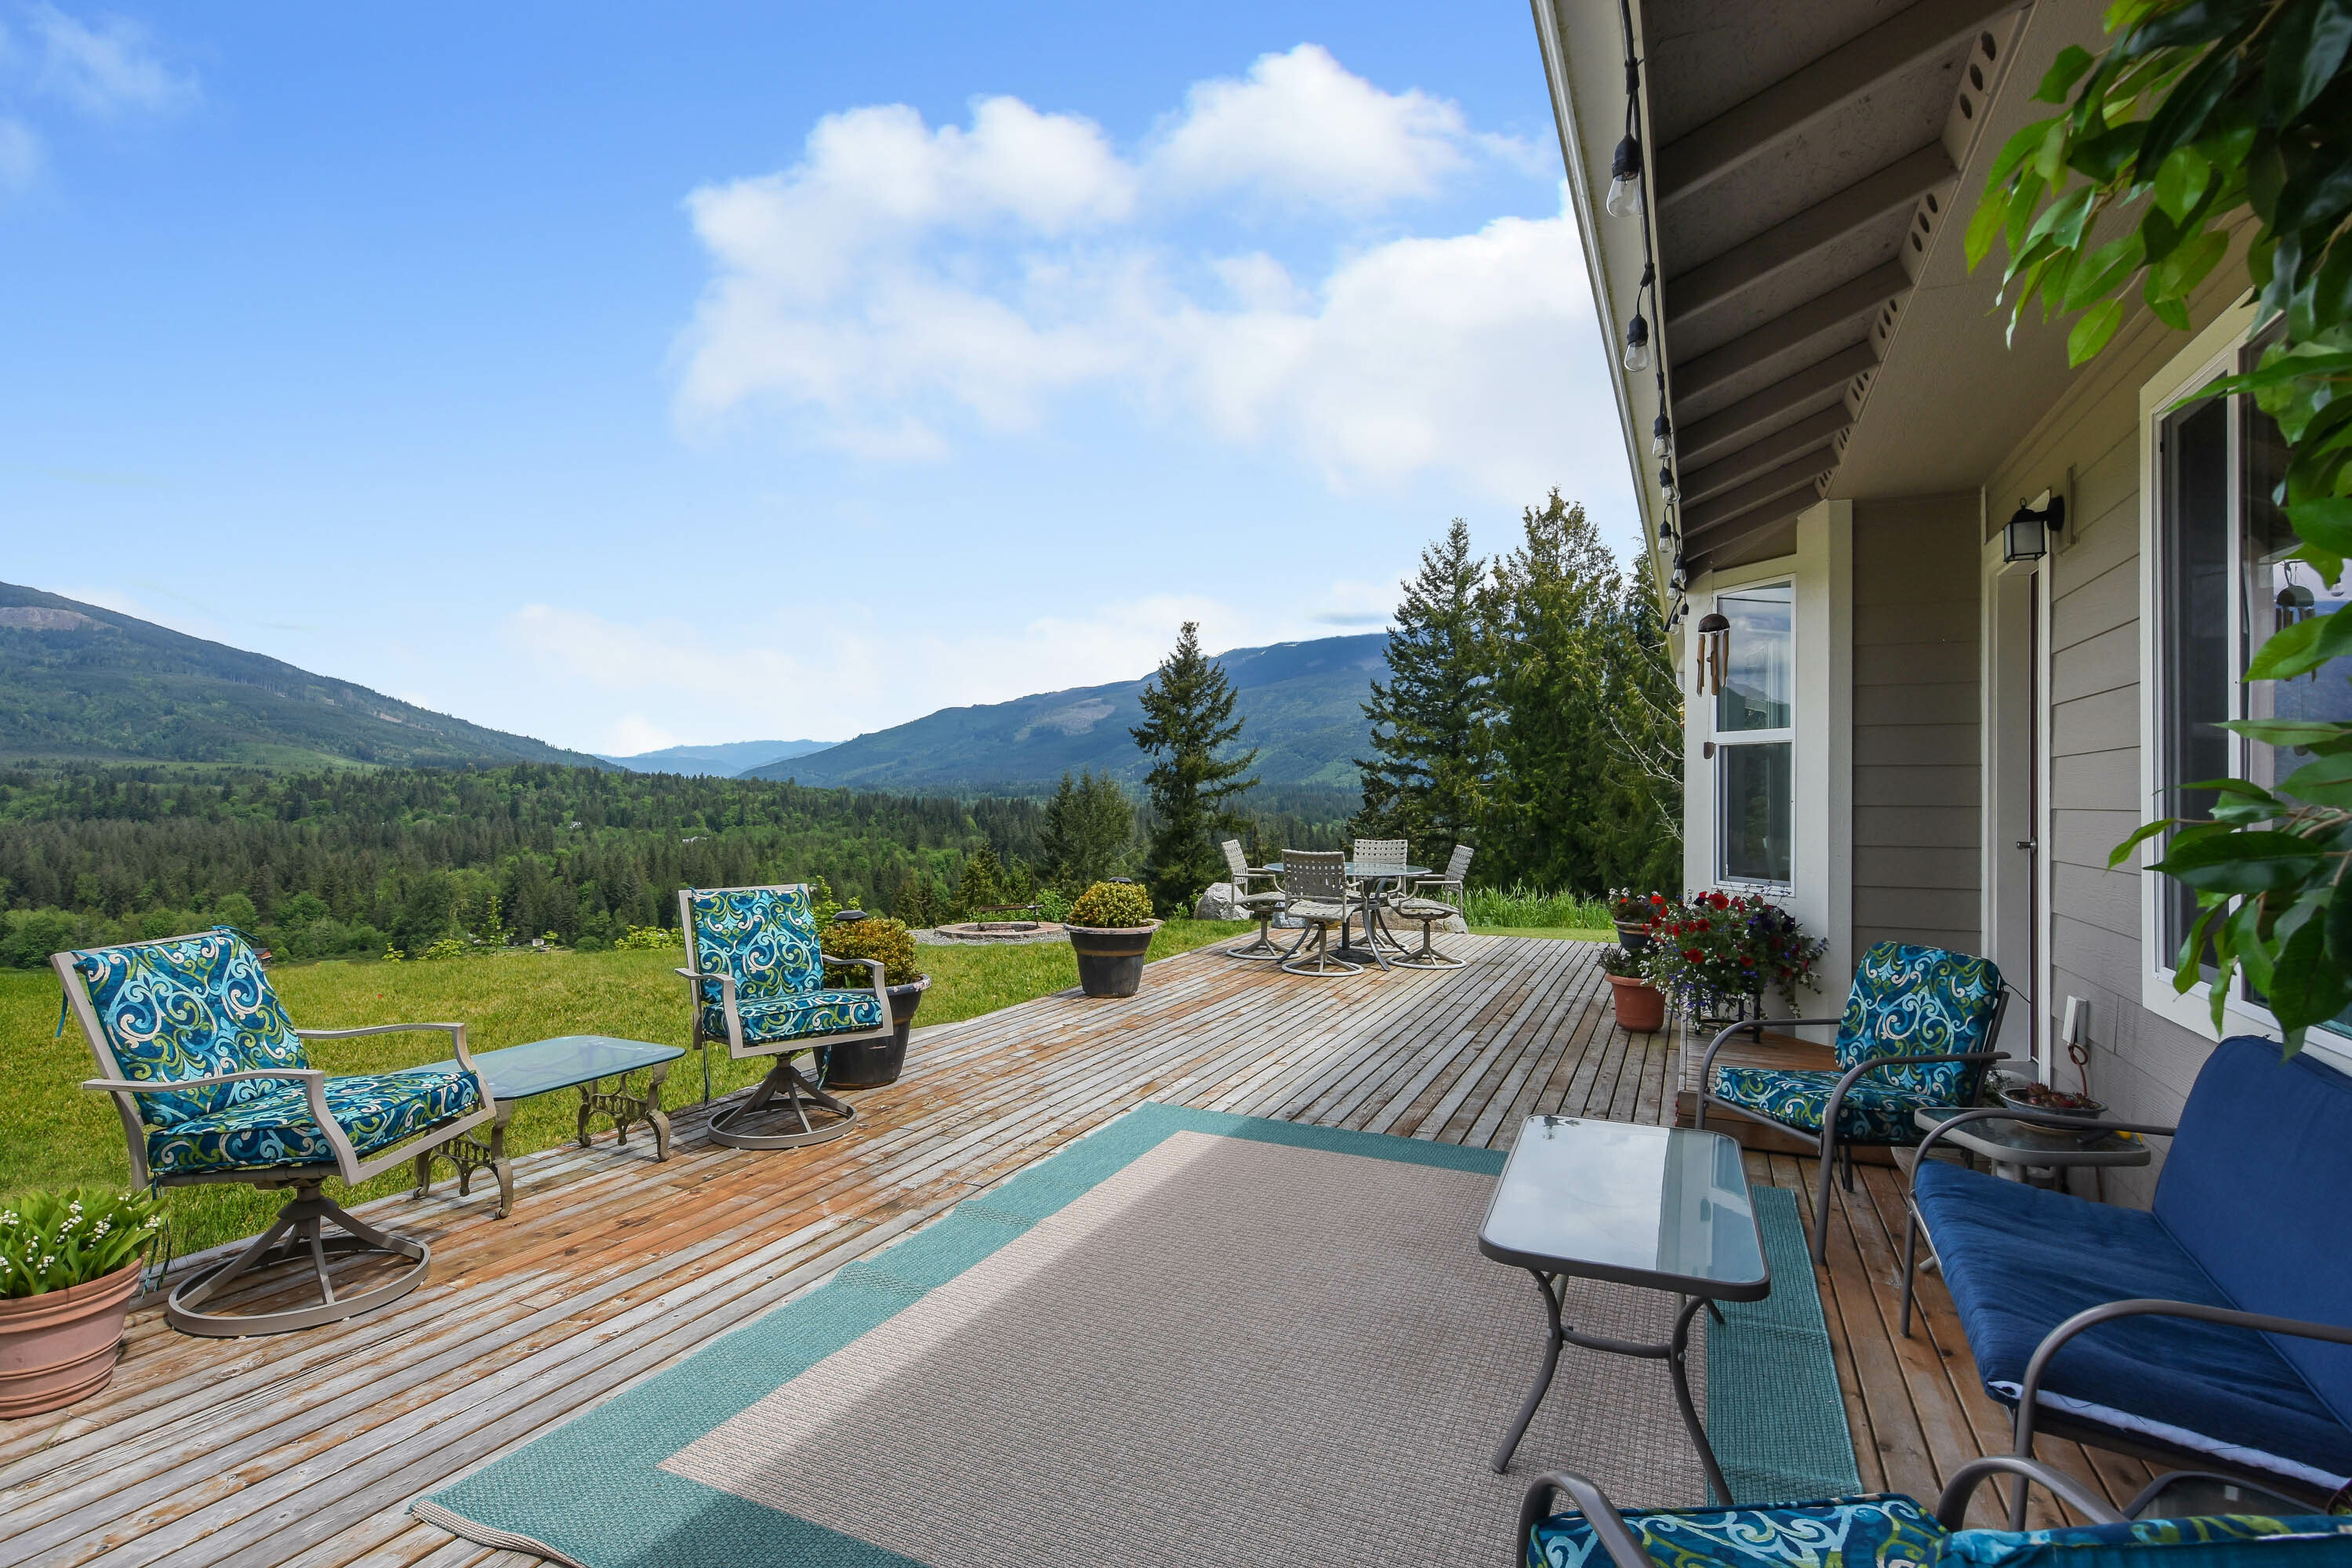 22655 Nature View Dr, Sedro Woolley, WA - USA (photo 1)